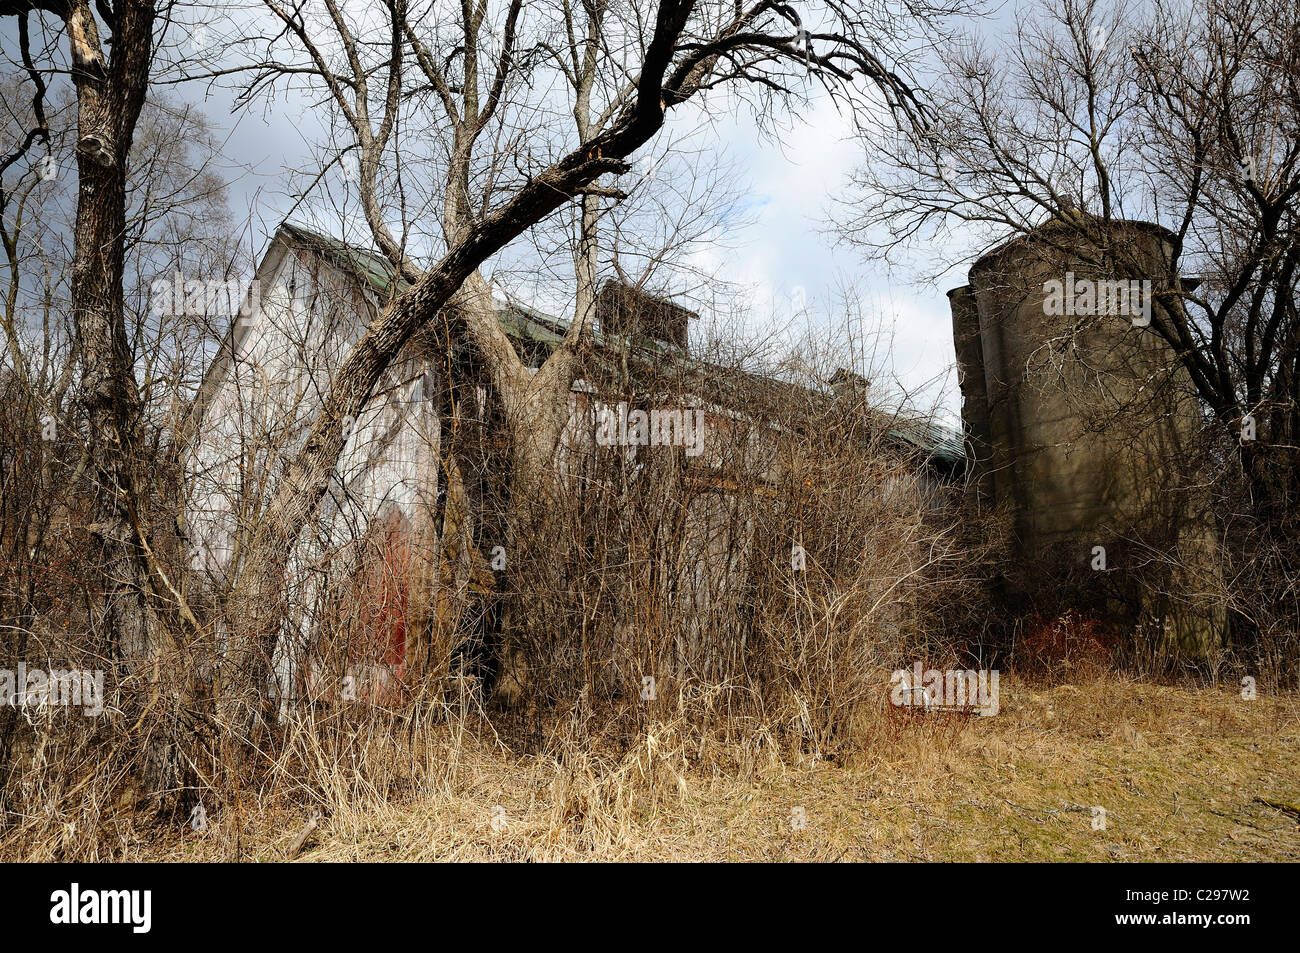 Decaying and neglected barn and silo in Northern Illinois, USA - Stock Image